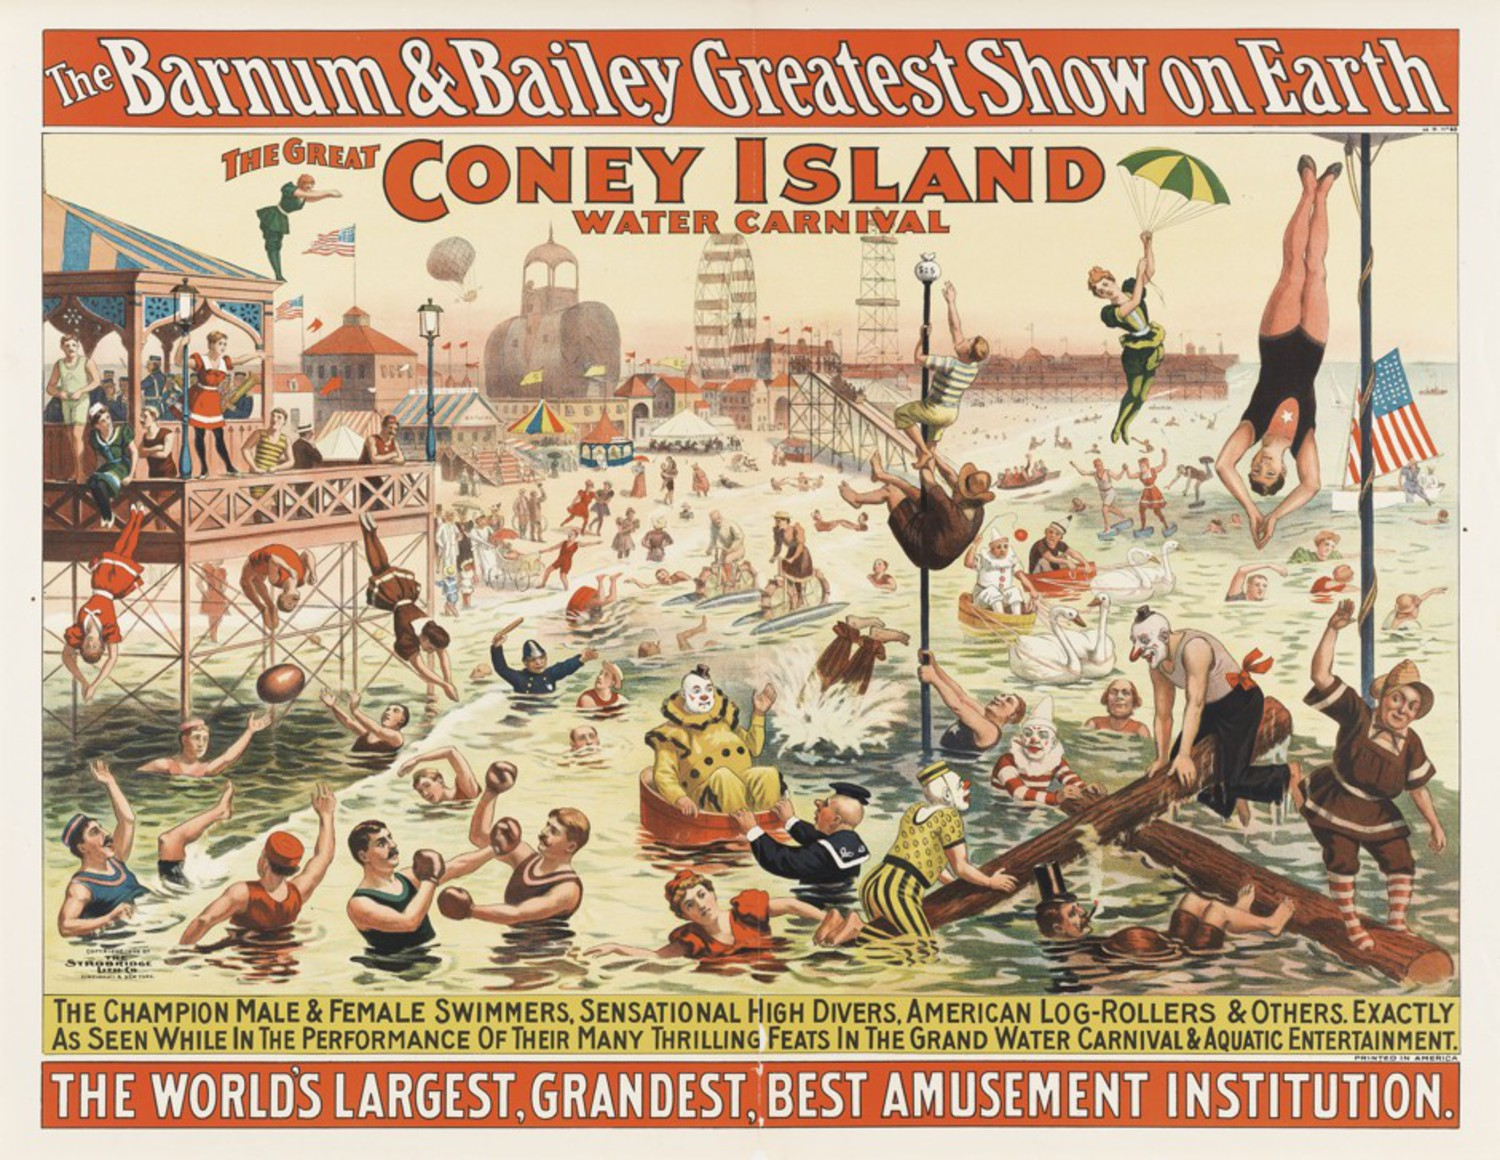 Strobridge Lithographing Company, The Barnum & Bailey Greatest Show on Earth / The Great Coney Island Water Carnival / Remarkable Head-Foremost Dives from Enormous Heights into Shallow Depths of Water, 1898, color lithograph poster, 38 7/8 x 28 3/4 inches, Cincinnati Art Museum, Gift of the Strobridge Lithographing Company, 1965.830